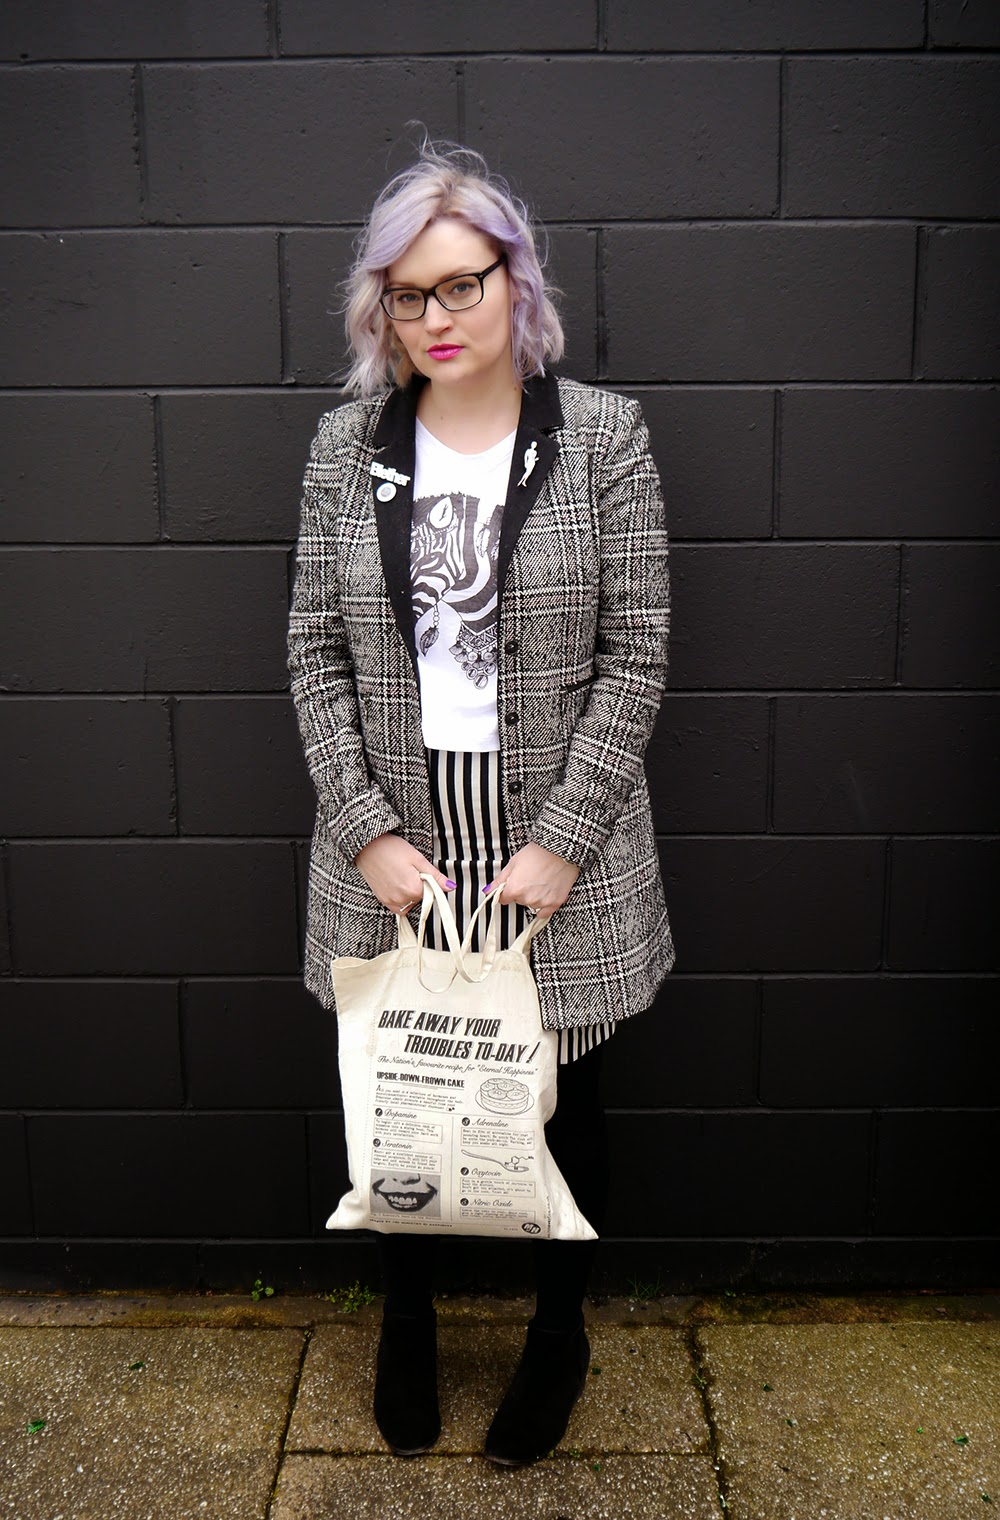 Glasgow, merchant city, the Clyde, plaid, Scottish blogger, style blog, blether, violet hair, purple hair, how to,